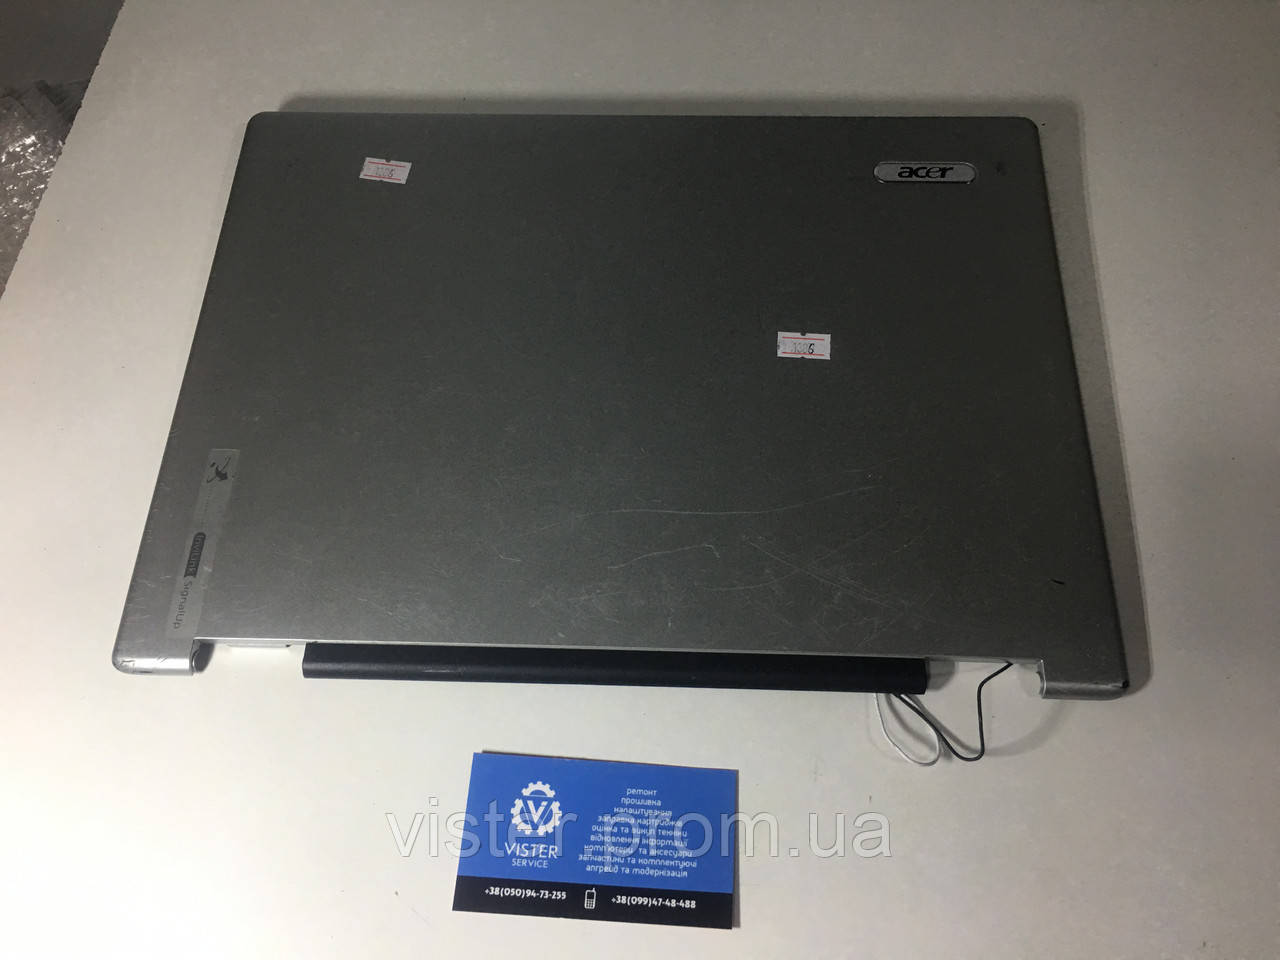 ACER 5100 BL51 WINDOWS 7 DRIVERS DOWNLOAD (2019)